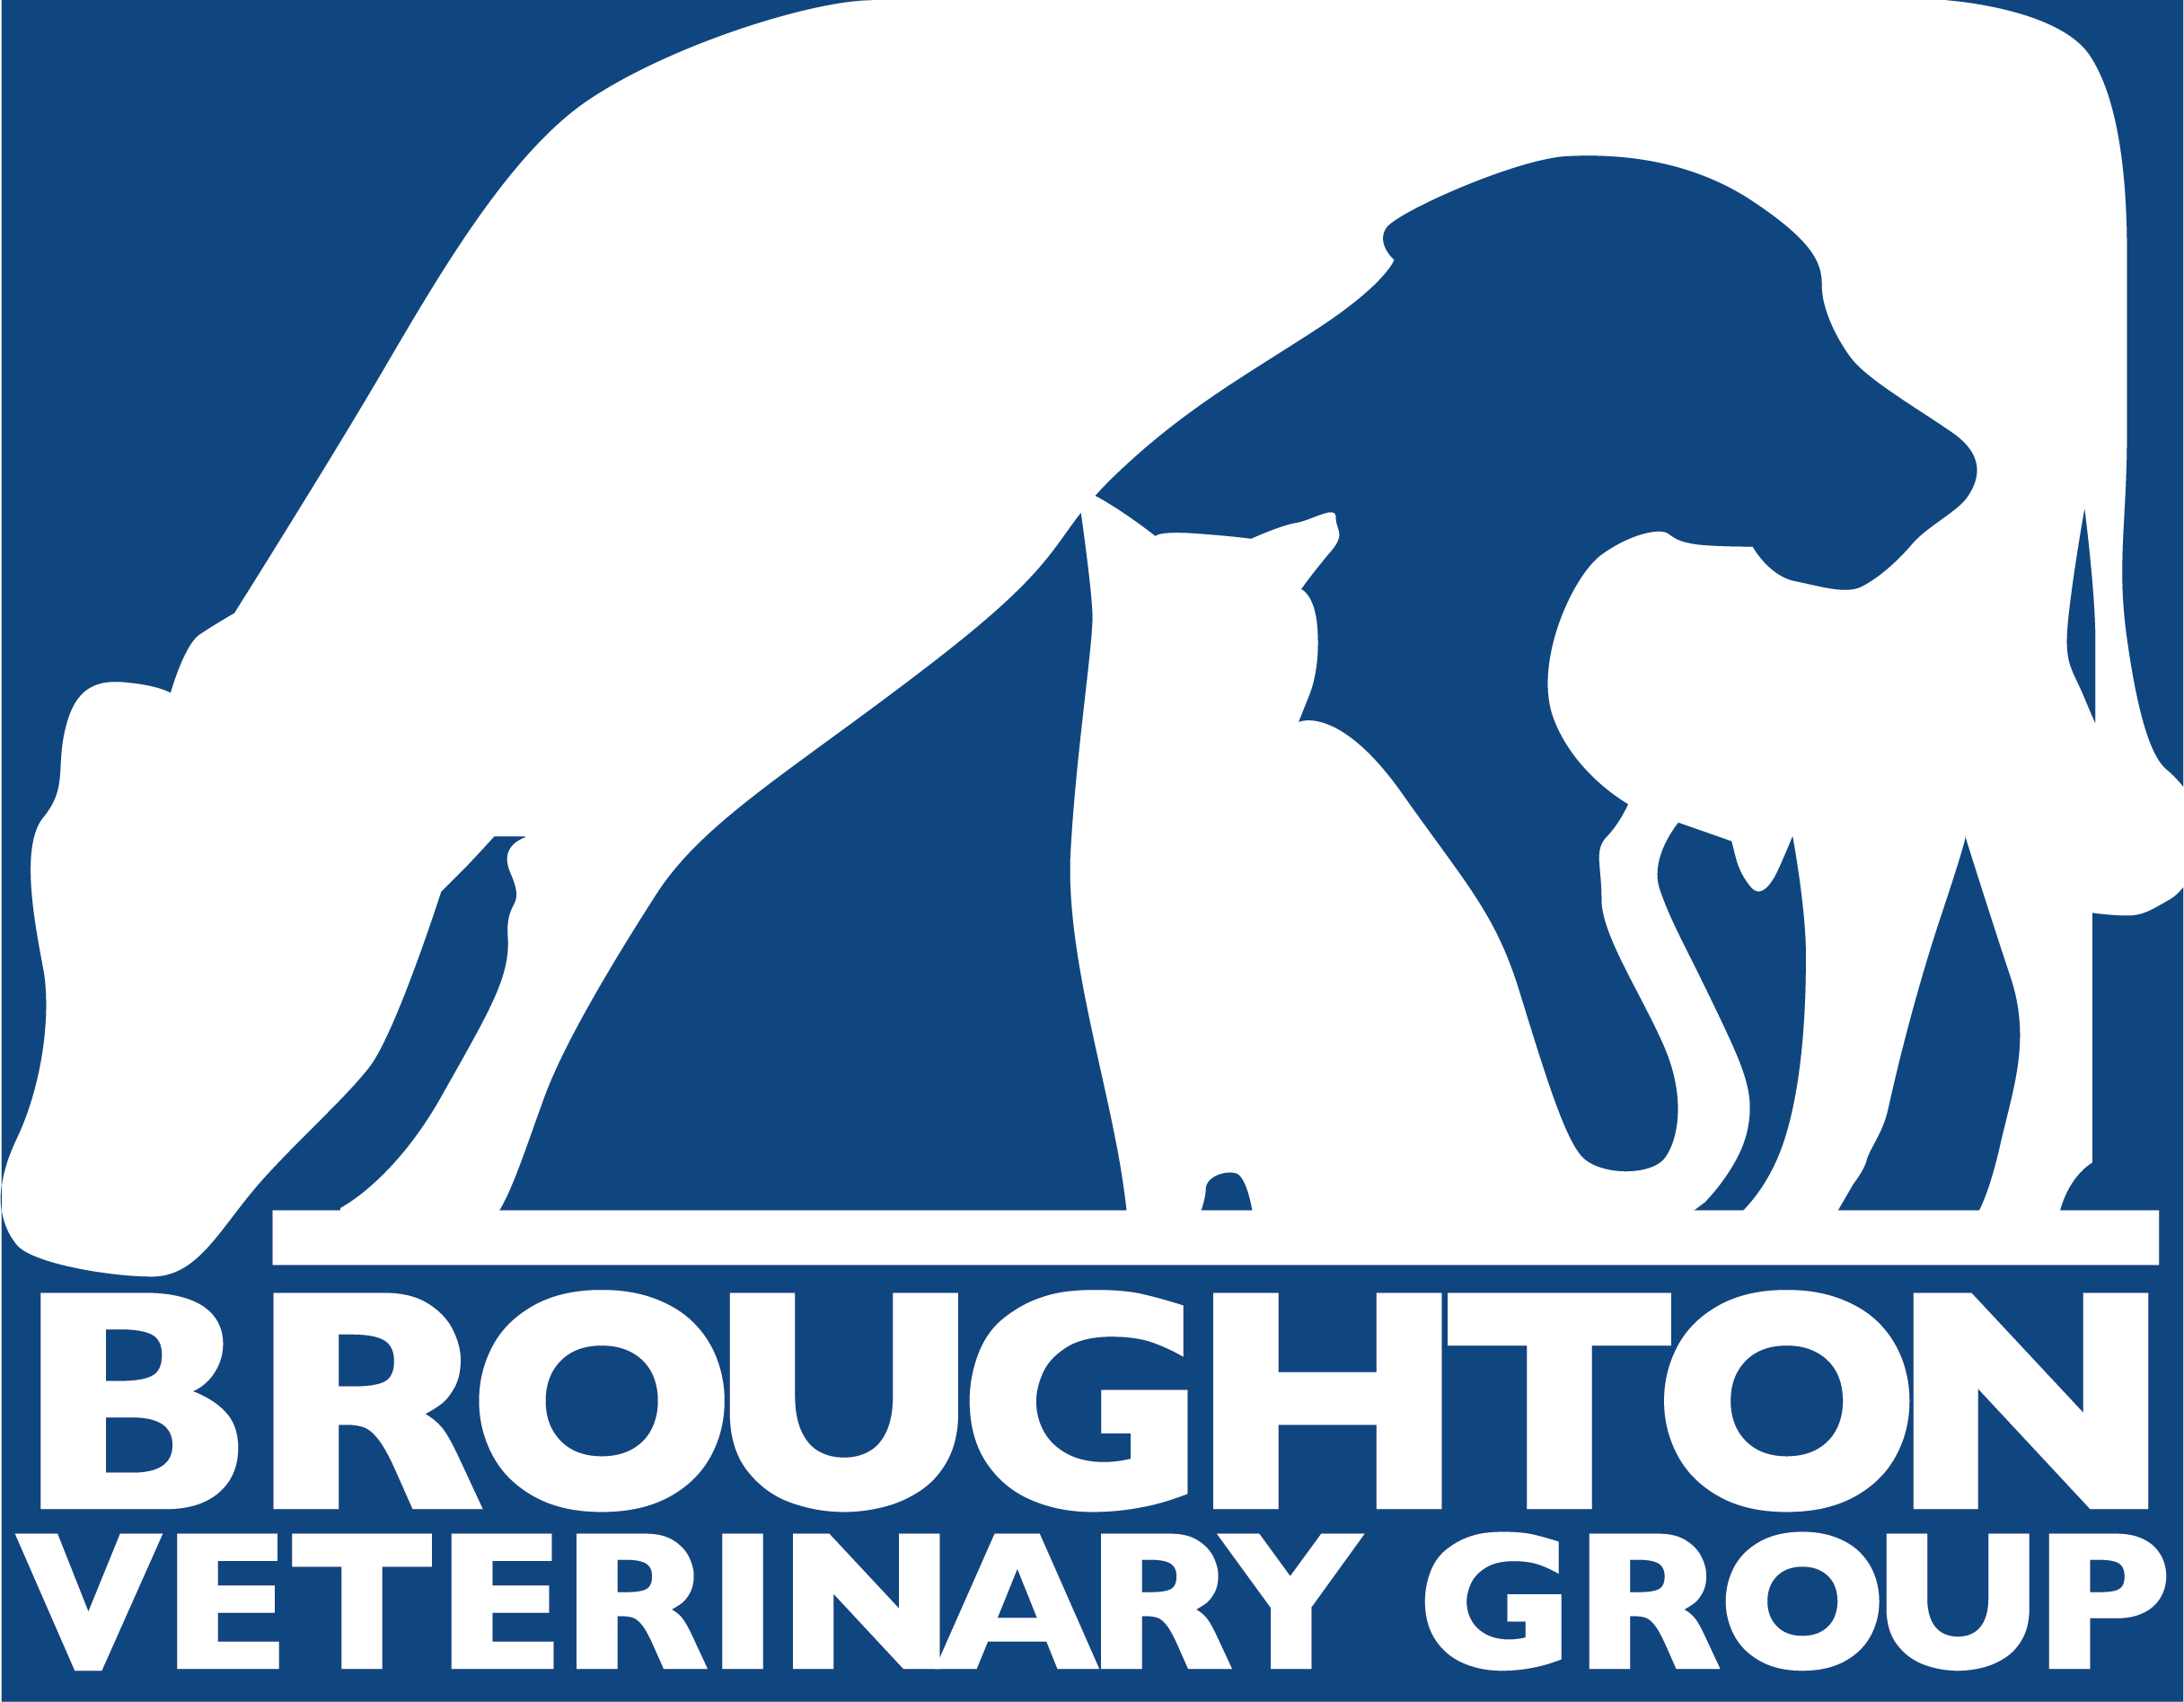 Broughton Veterinary Group, Lutterworth - Lutterworth, Leicestershire LE17 4NJ - 01455 552117 | ShowMeLocal.com